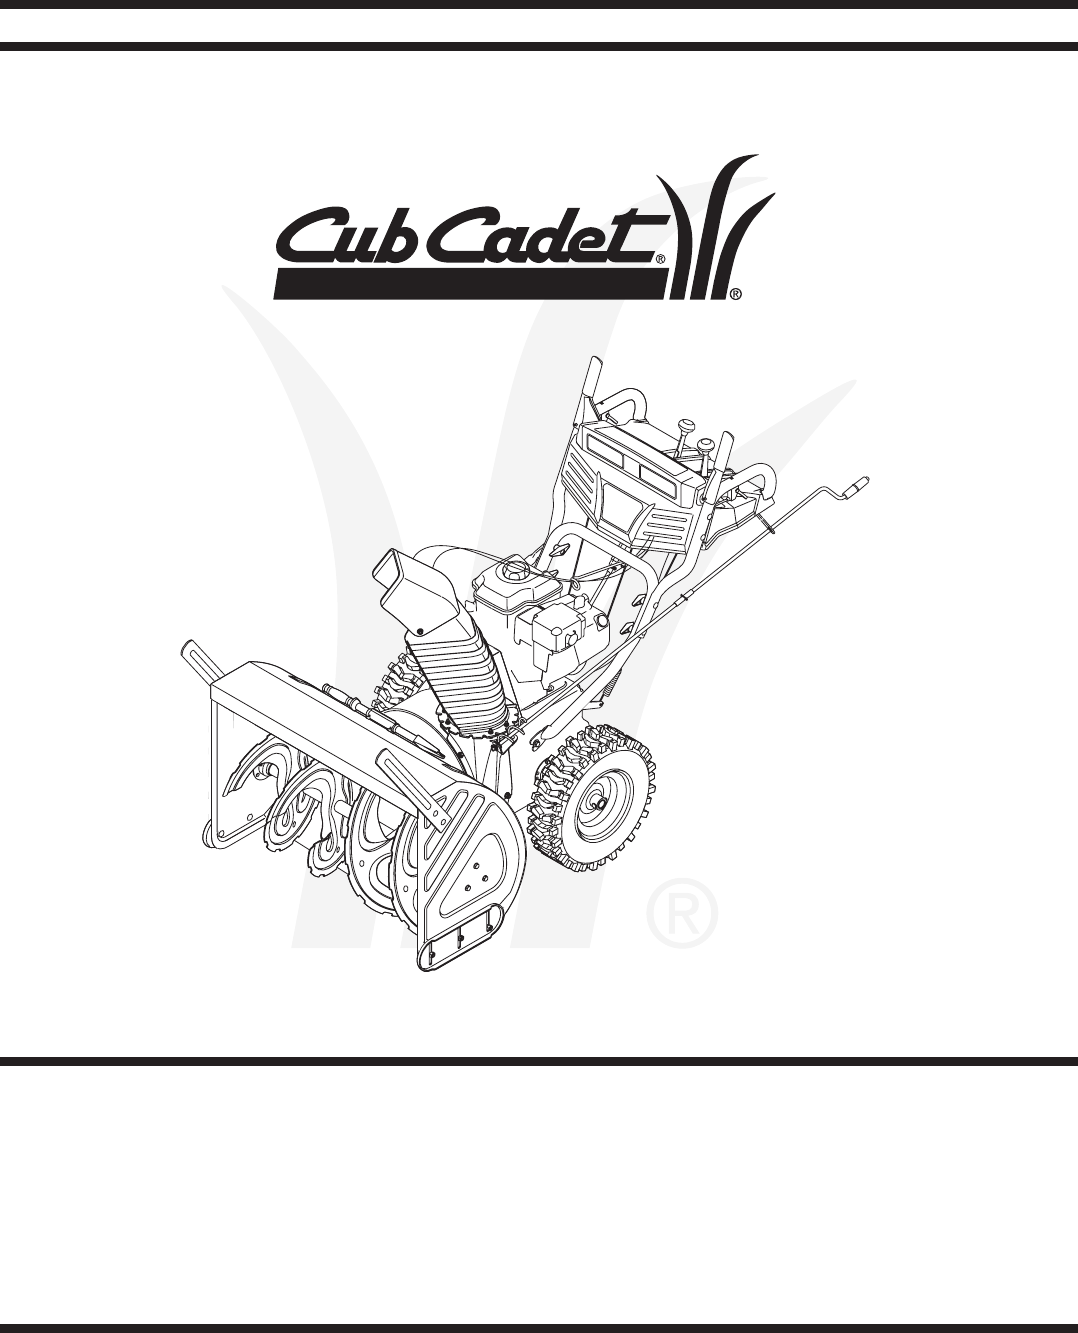 Cub Cadet Snow Blower OEM-390-679 User Guide